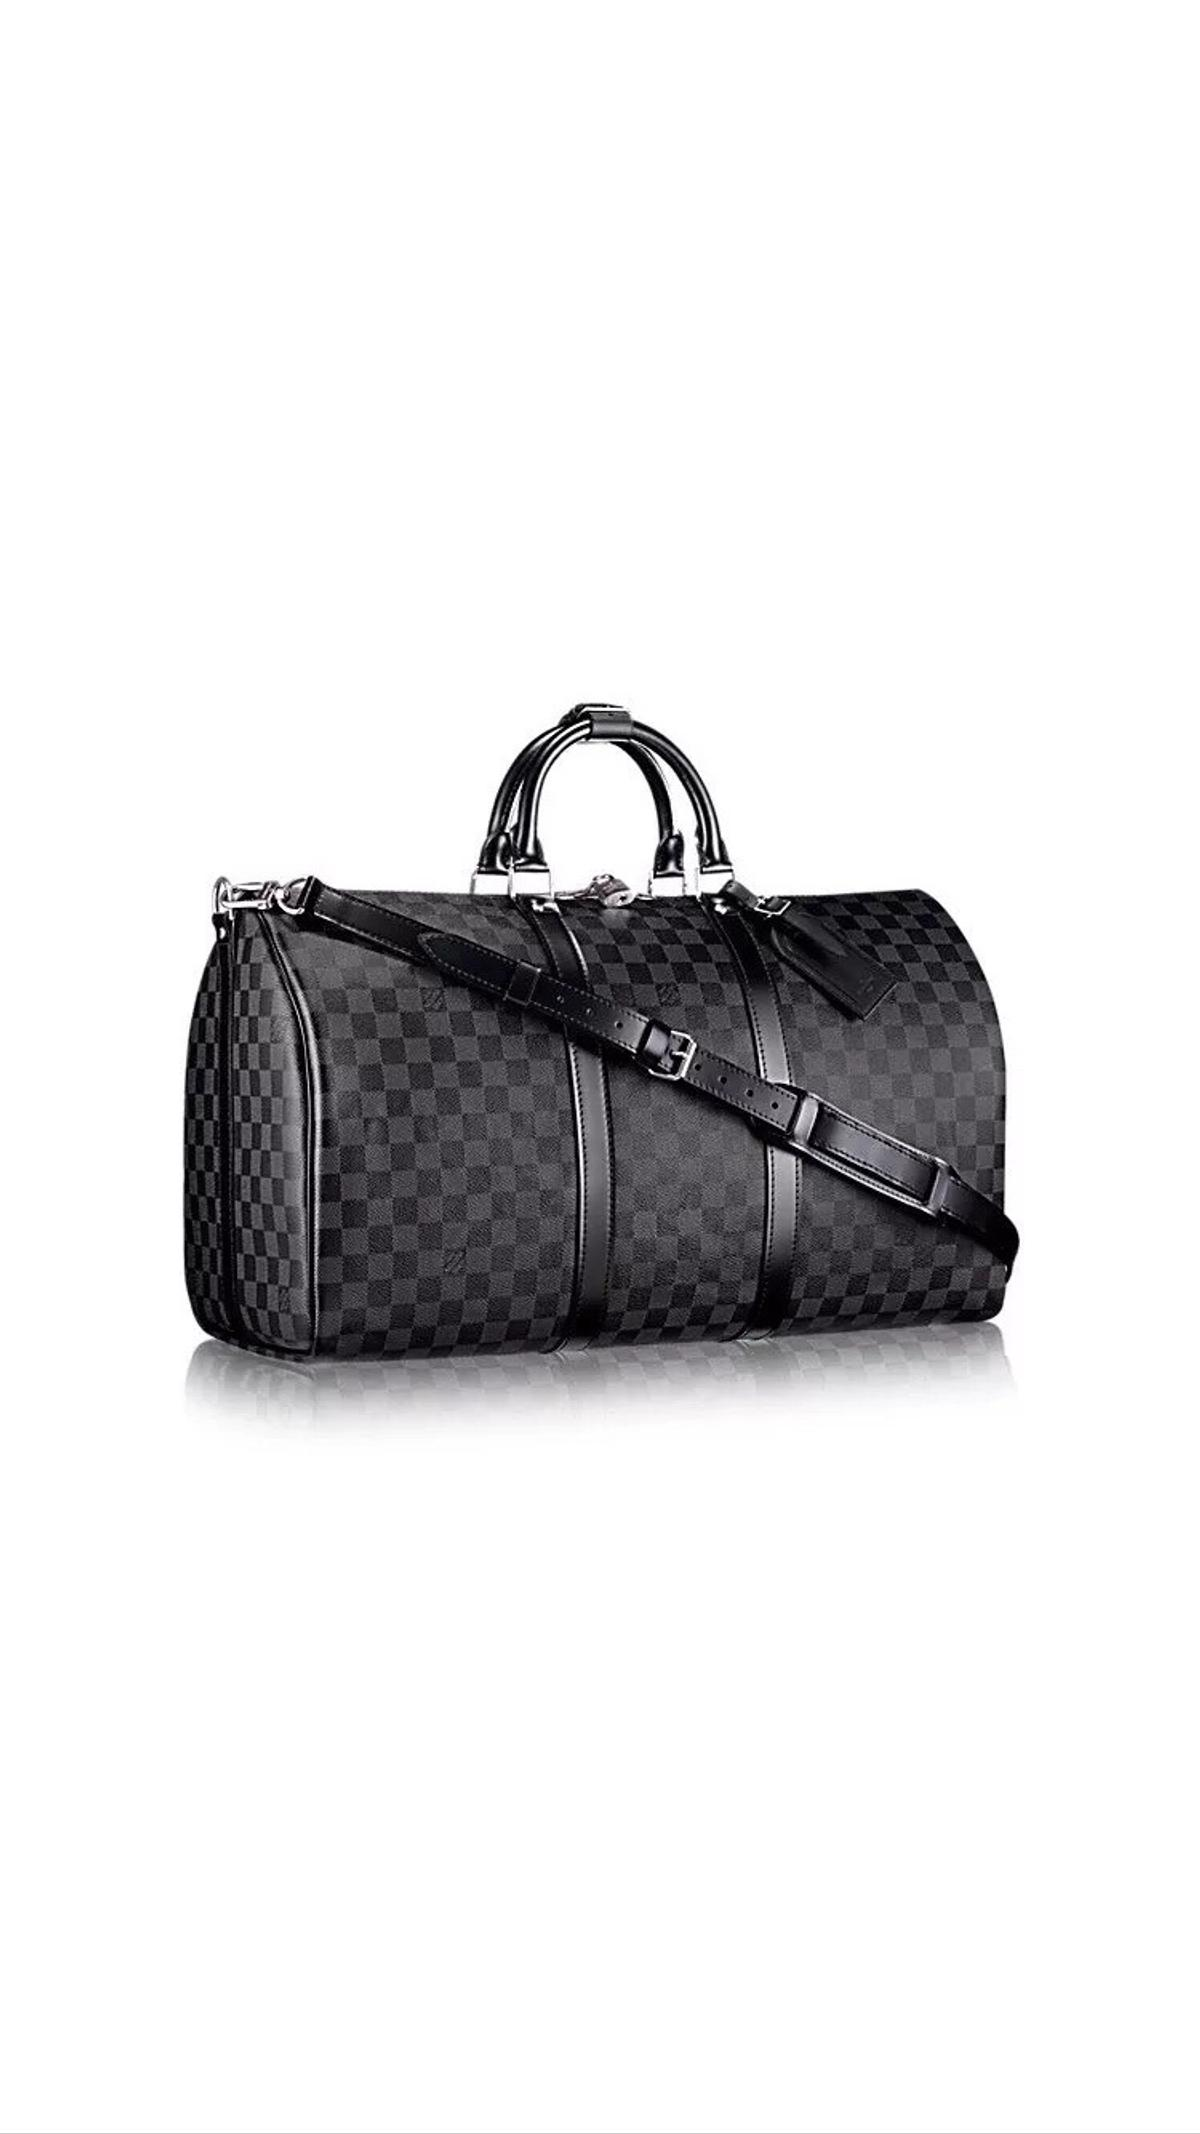 1e92ac37a7b Louis Vuitton Keepall Bandouliere 55 in E20 London for £869.00 for ...